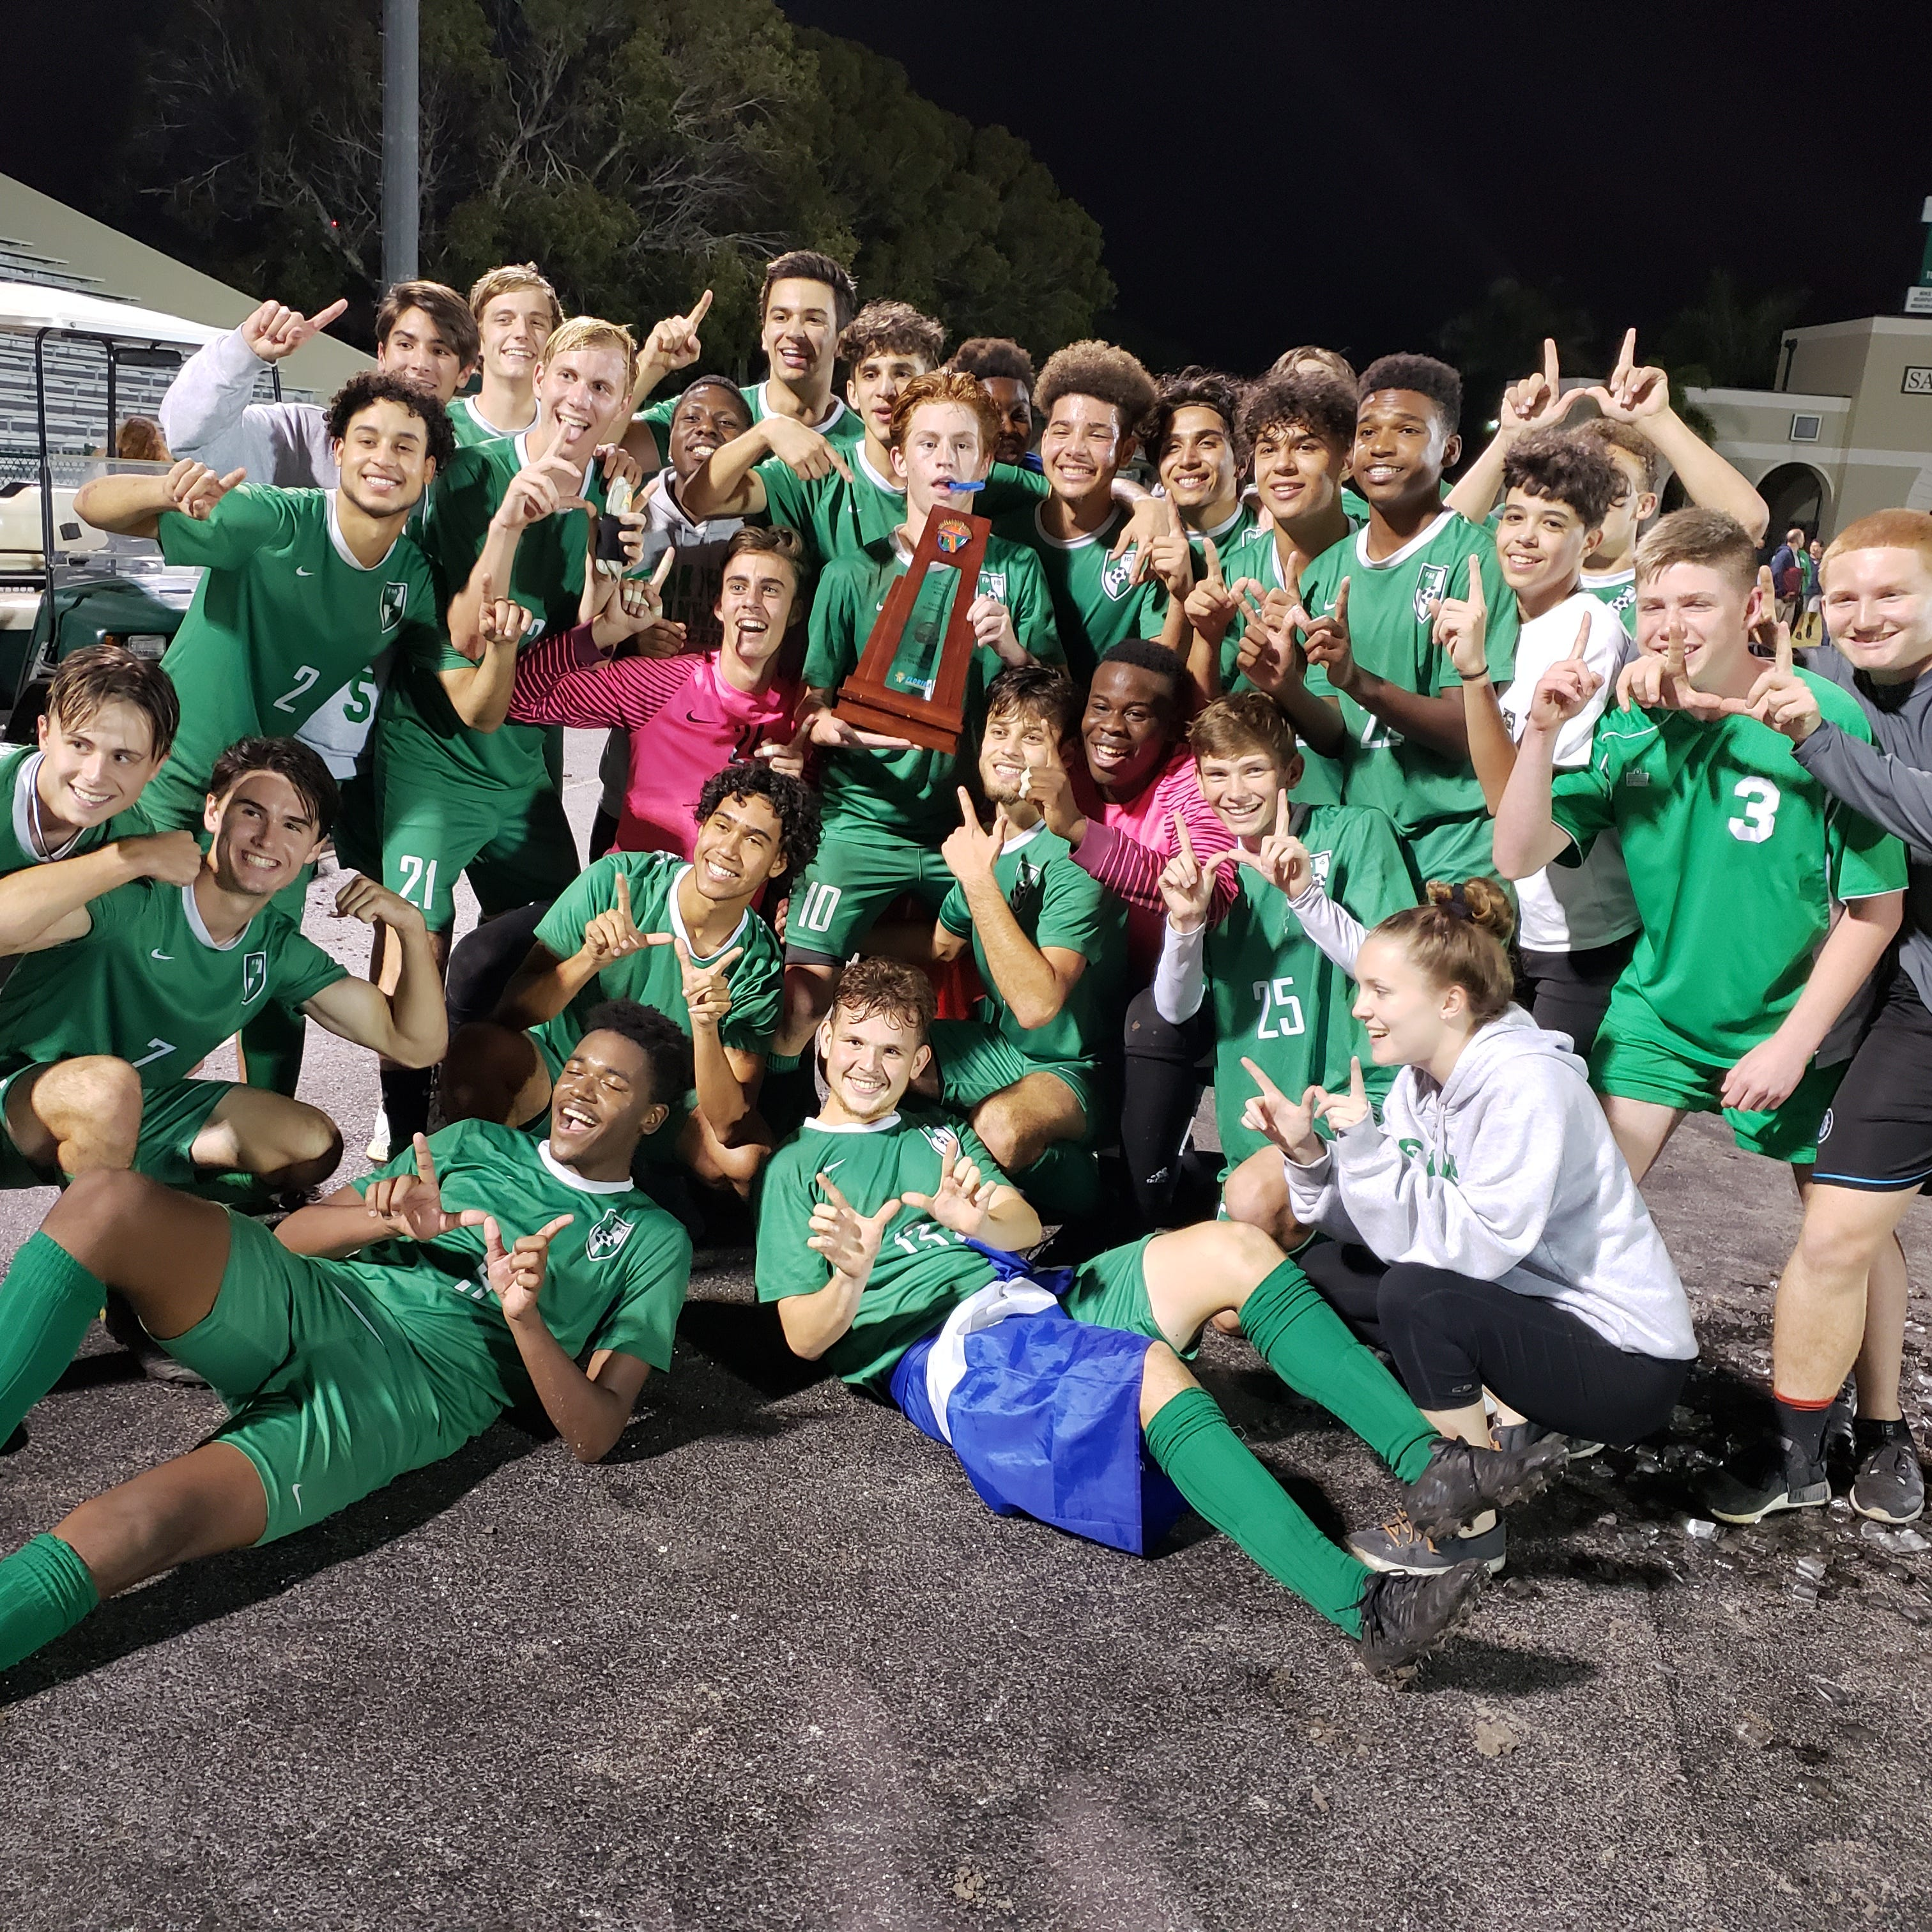 Fort Myers boys soccer riding hot streak into regional final, chasing first state title since 1999